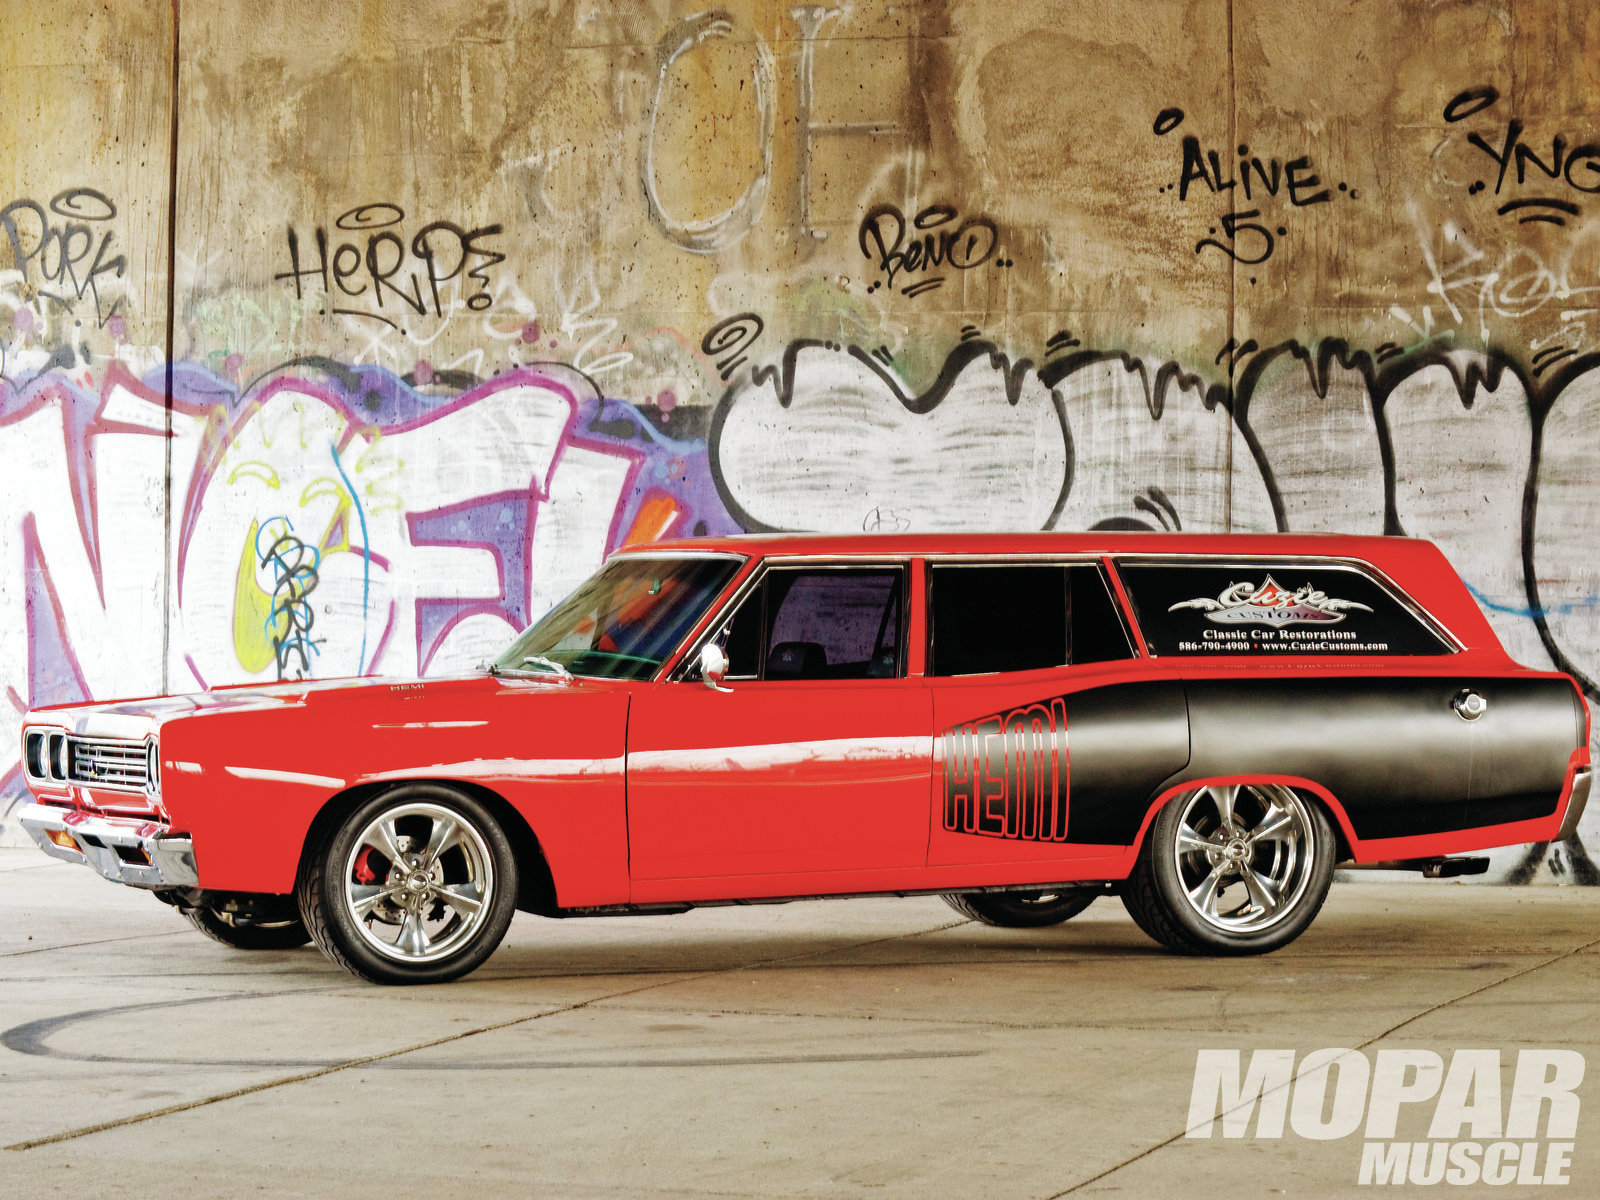 Rare-these-days Satellite wagon was built as a Road Runner and serves as the daily-drivable parts hauler for Cuzie's Customs, and is a rolling billboard for the shop, too. BFG-shod Billet Specialties rims fill the fenderwells and highlight the Sikkens Viper Red/black color scheme.